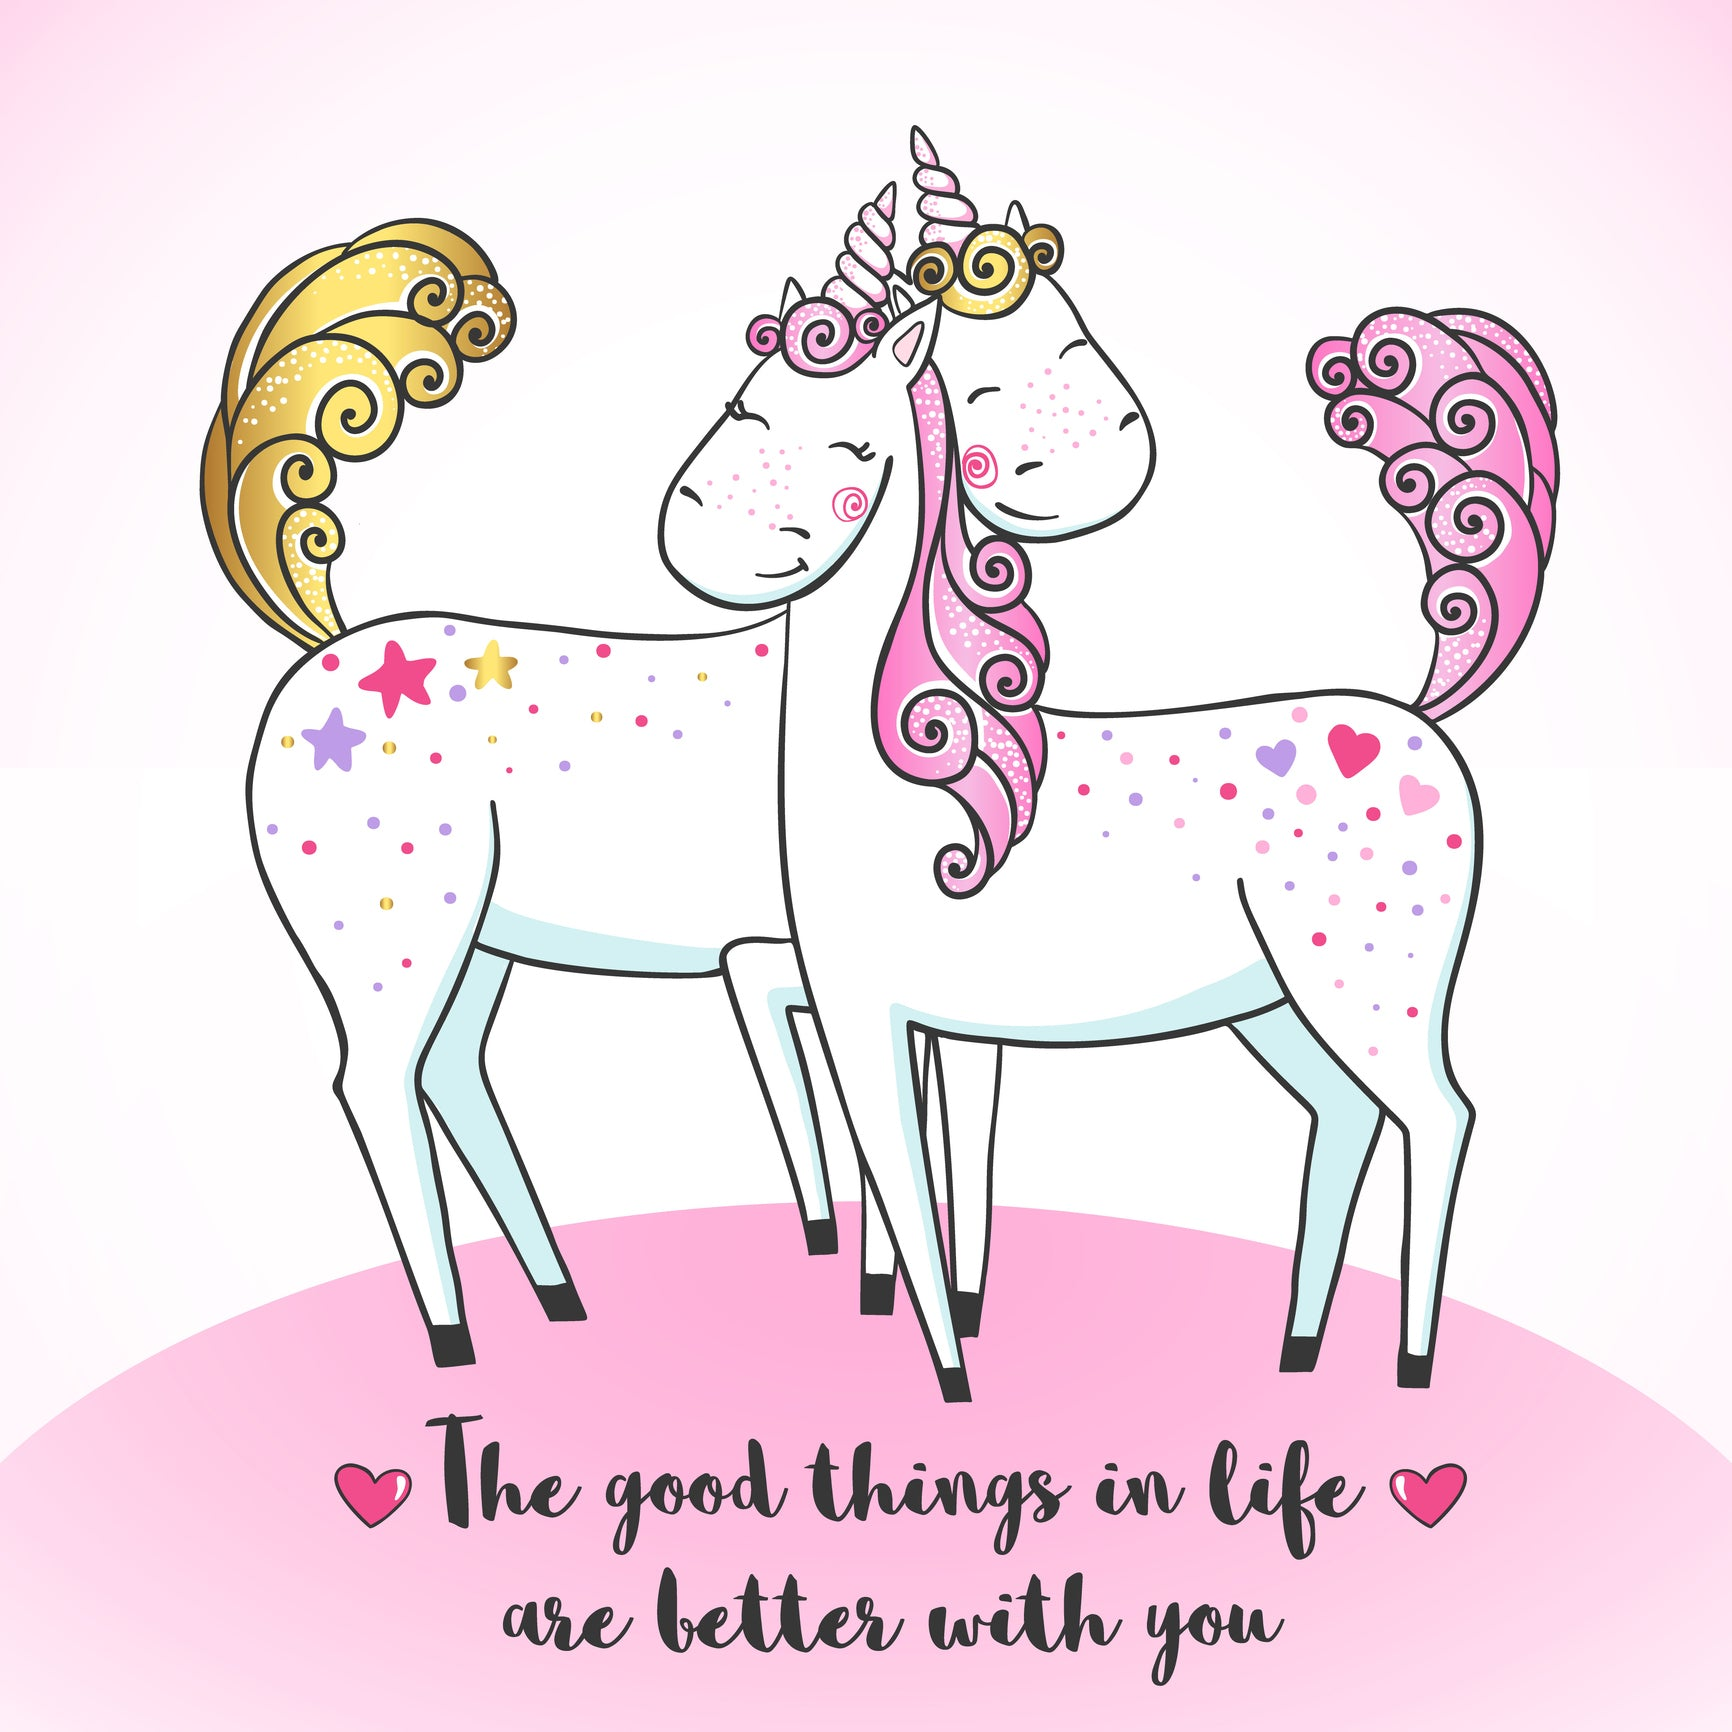 The Good Things in Life are Better with You Unicorn Best Friends Valentine Cartoon Icon Vinyl Decal Sticker